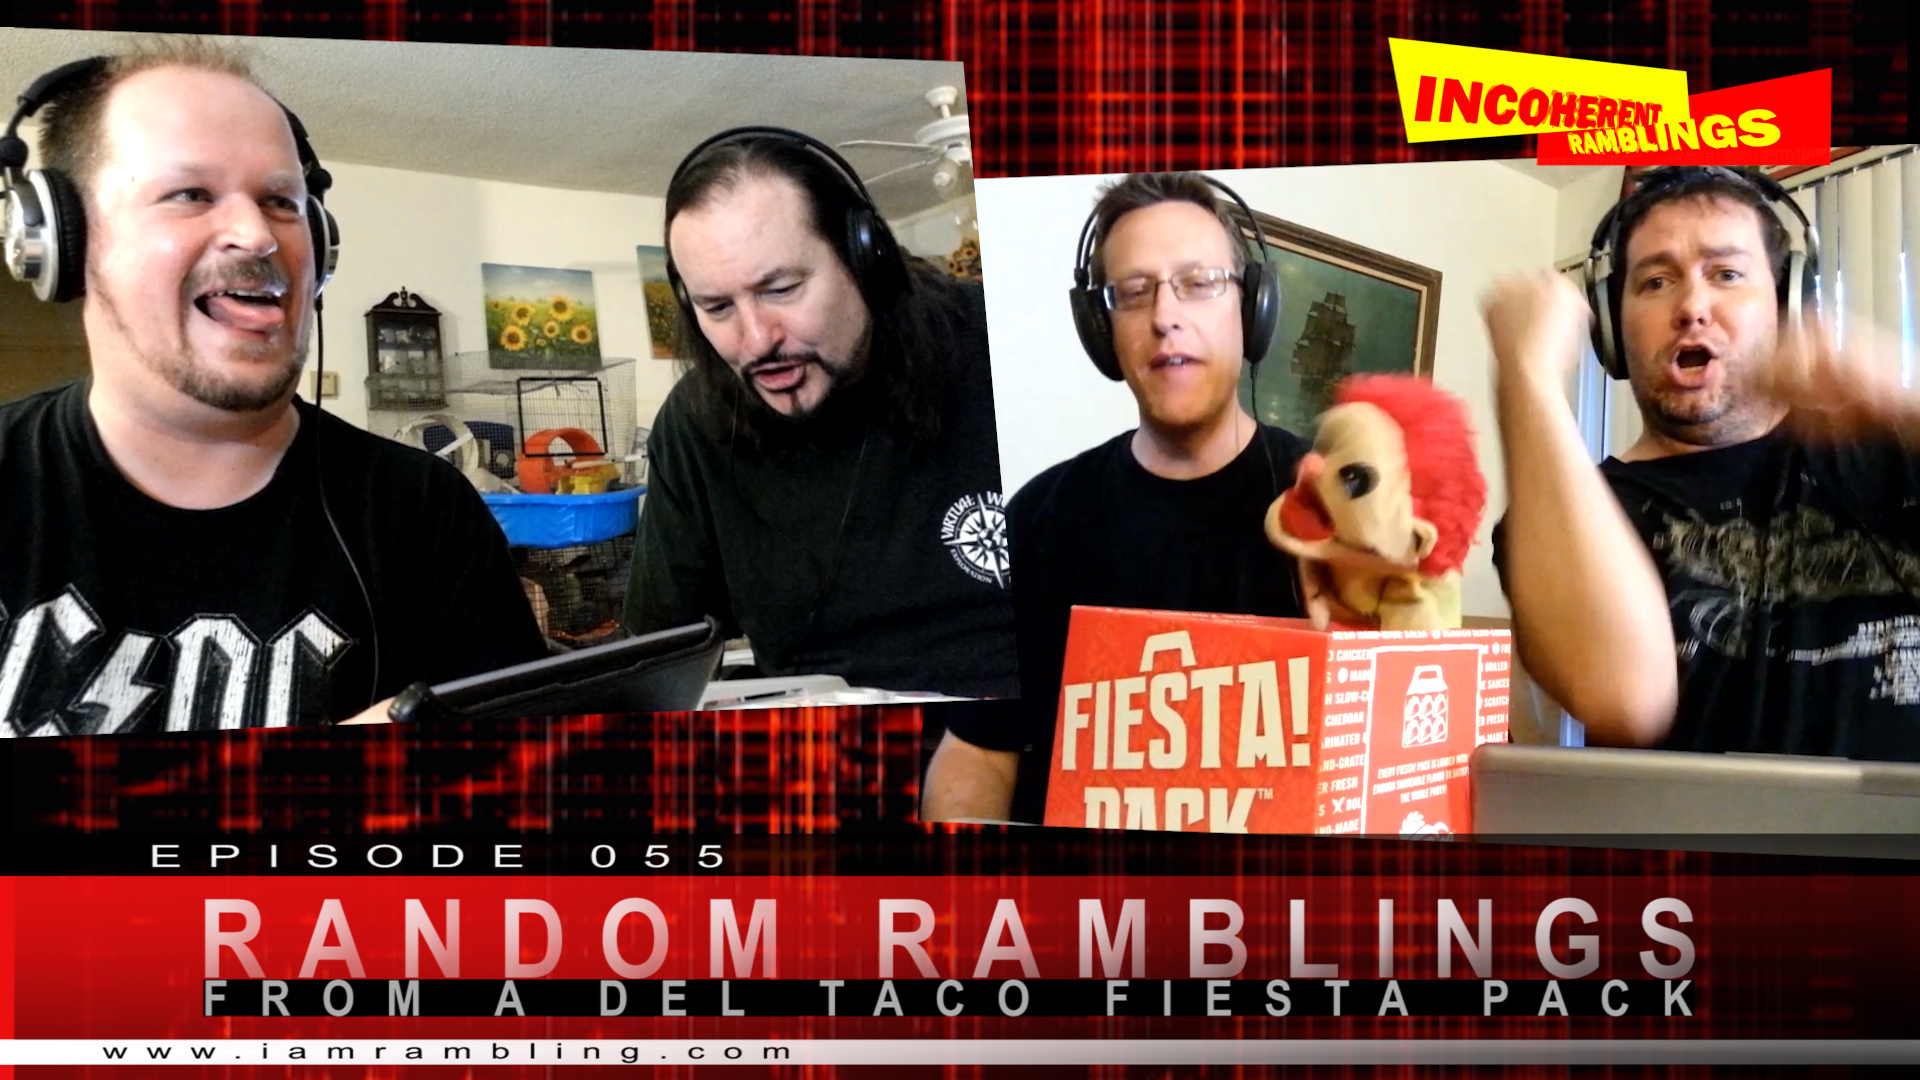 IR Video Episode 055 – RR from a Del Taco Fiesta Pack